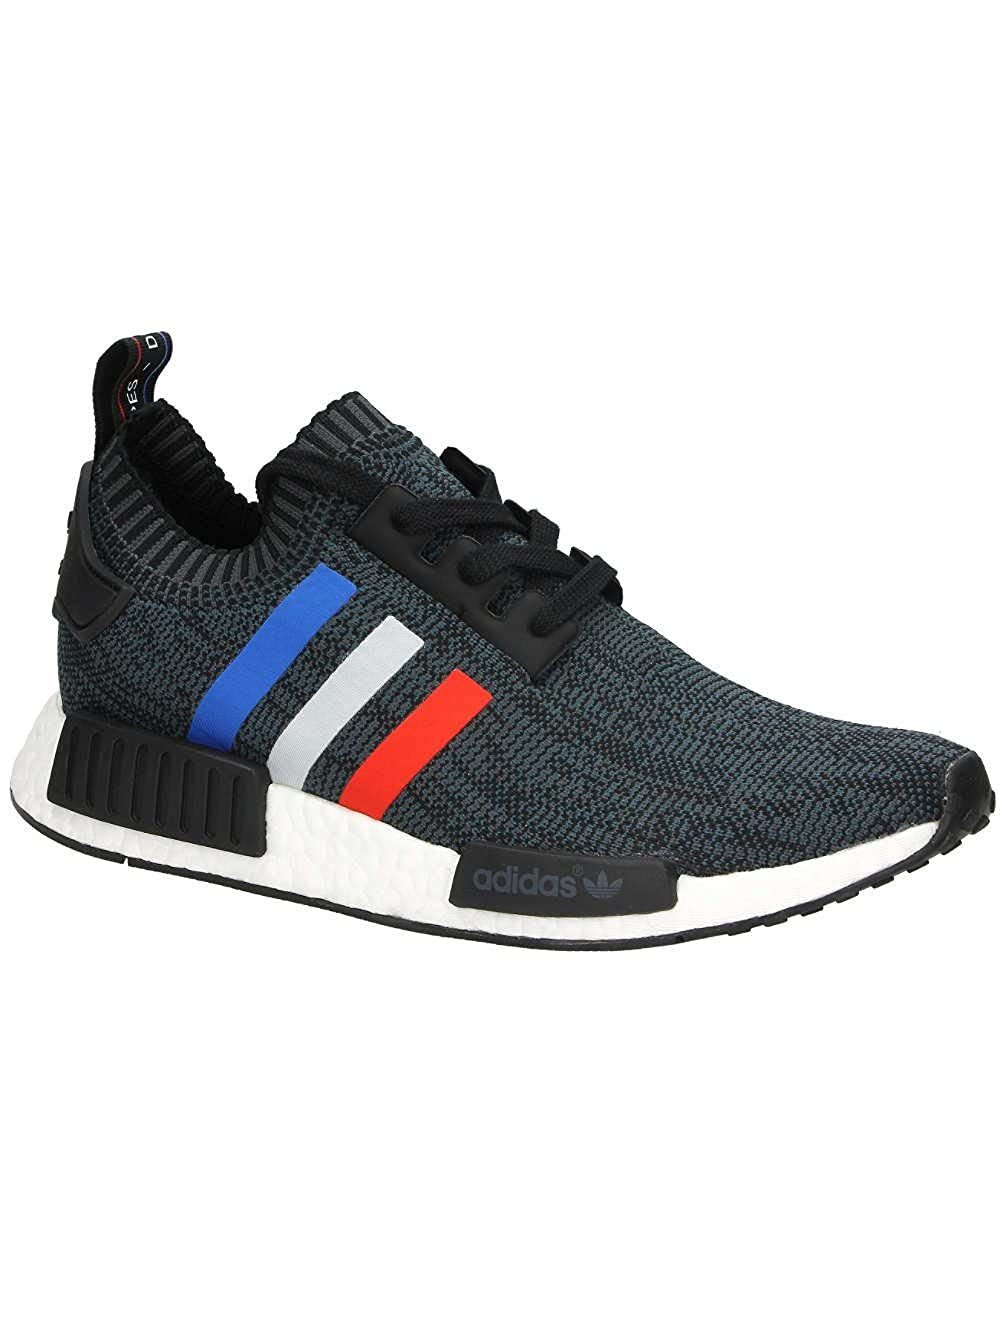 3d855439f8b7d Adidas NMD R1 Pk 'Tri Color' - Bb2887 - Size 4: Amazon.in: Shoes ...